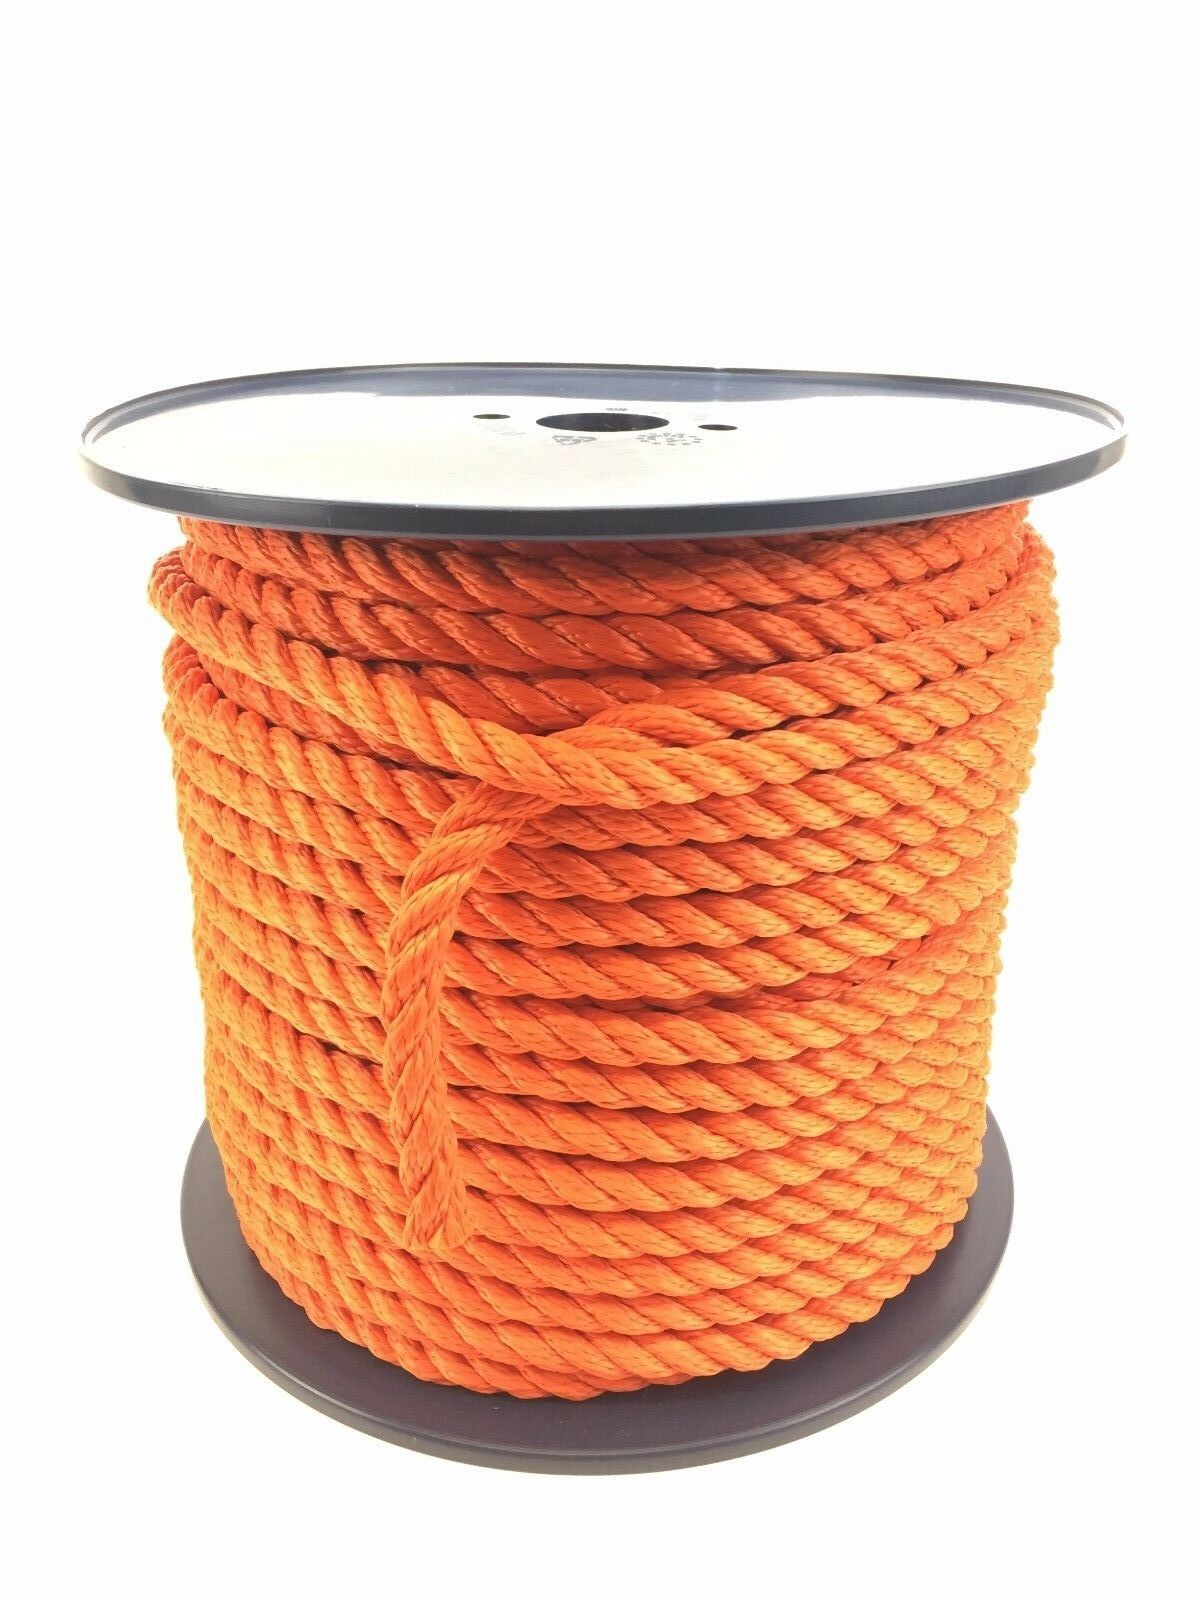 12mm orange Softline Rope x 50 Metre Reel, Yachts, Sailing, Boats, Marine